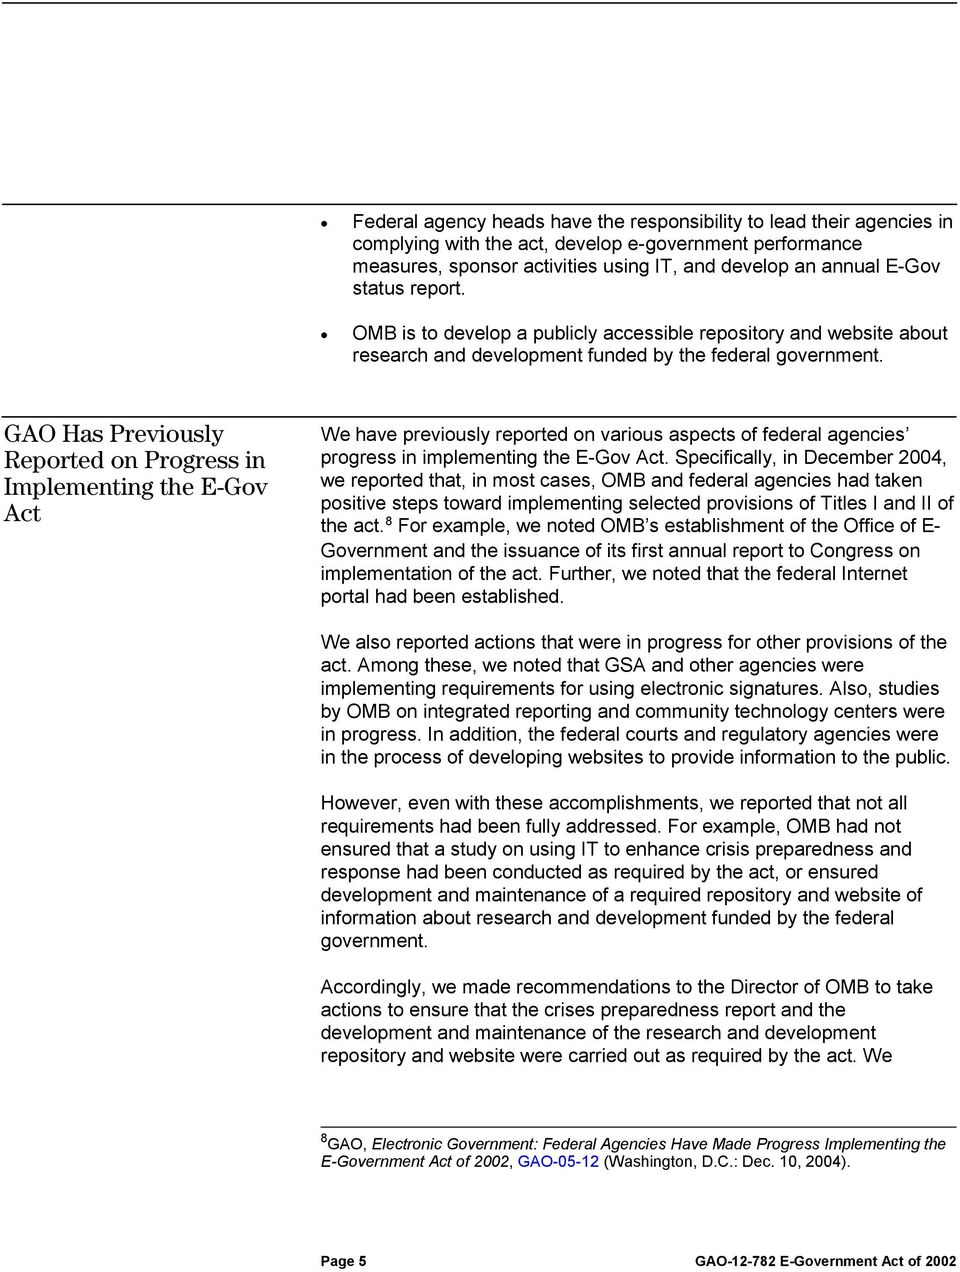 GAO Has Previously Reported on Progress in Implementing the E-Gov Act We have previously reported on various aspects of federal agencies progress in implementing the E-Gov Act.